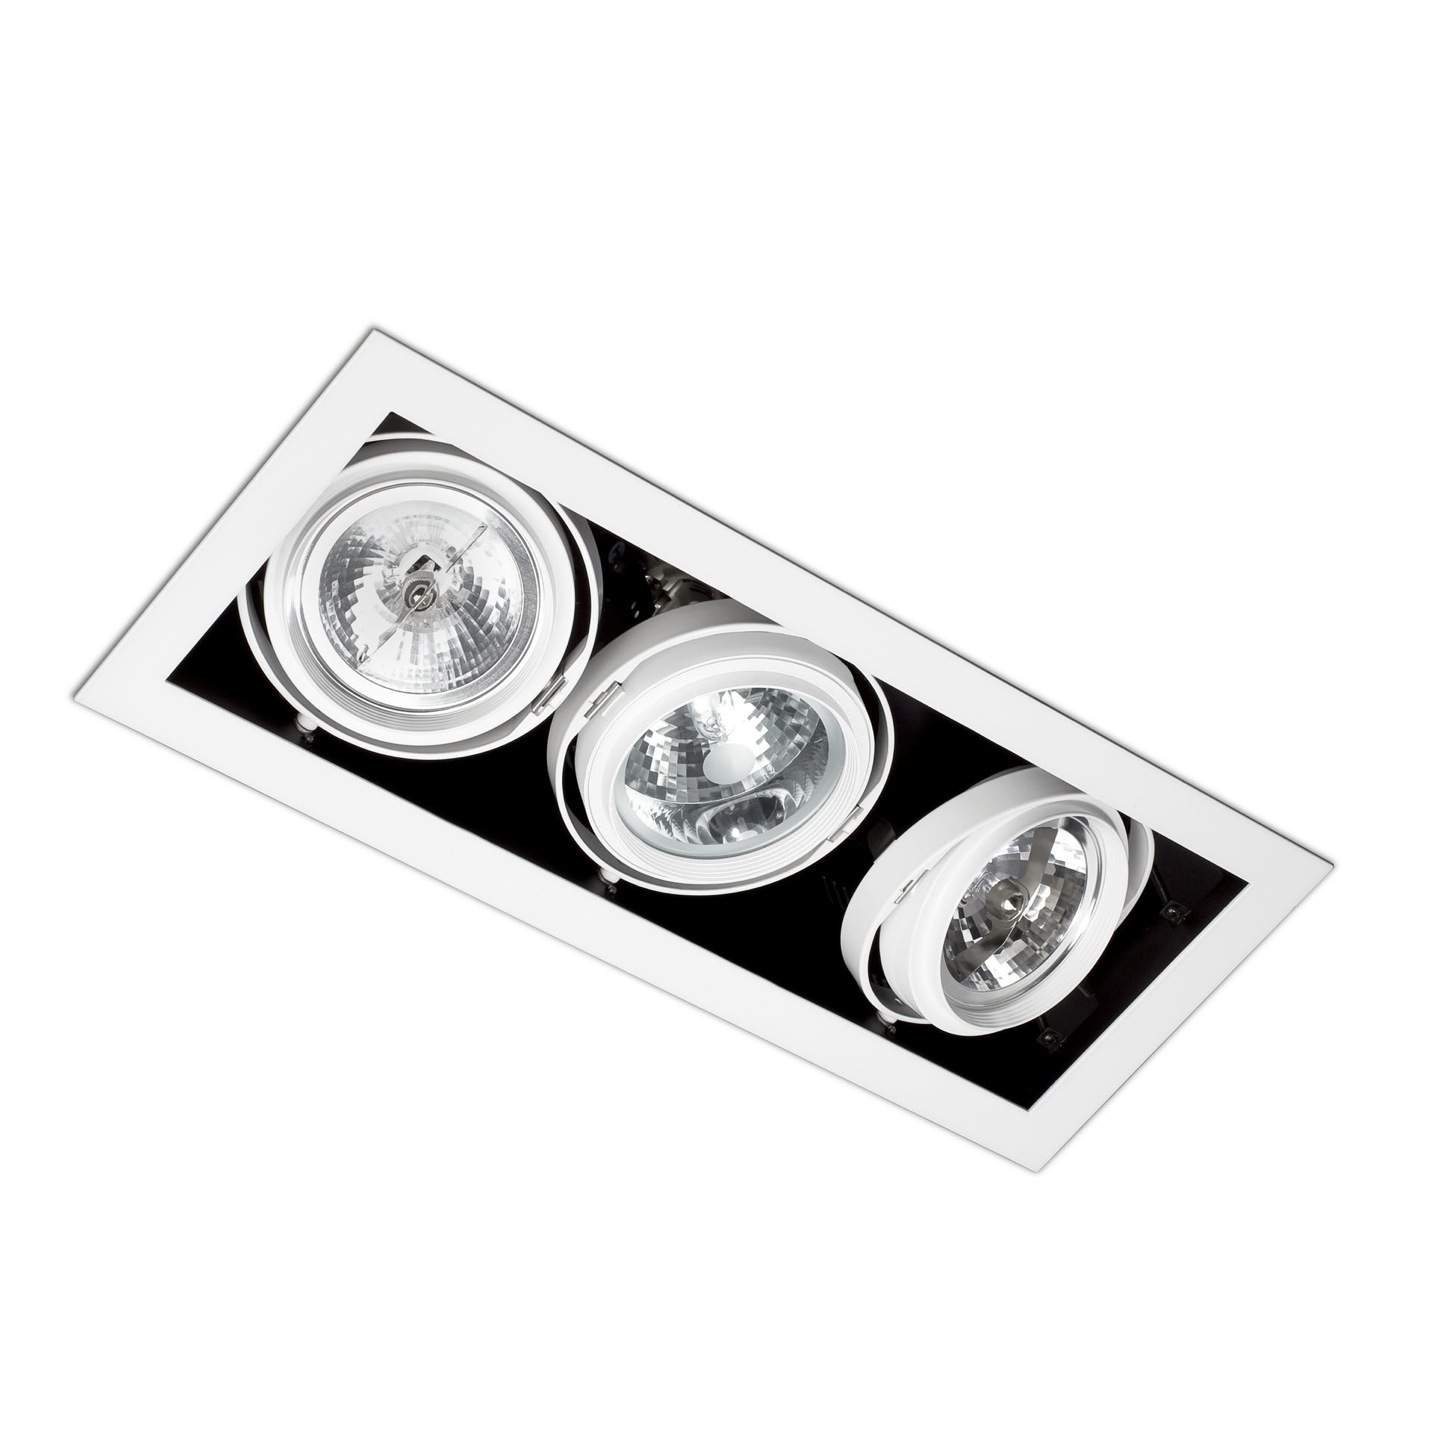 Morris Recessed Ceiling (body without PortaLámpara s) 3xElements Grey